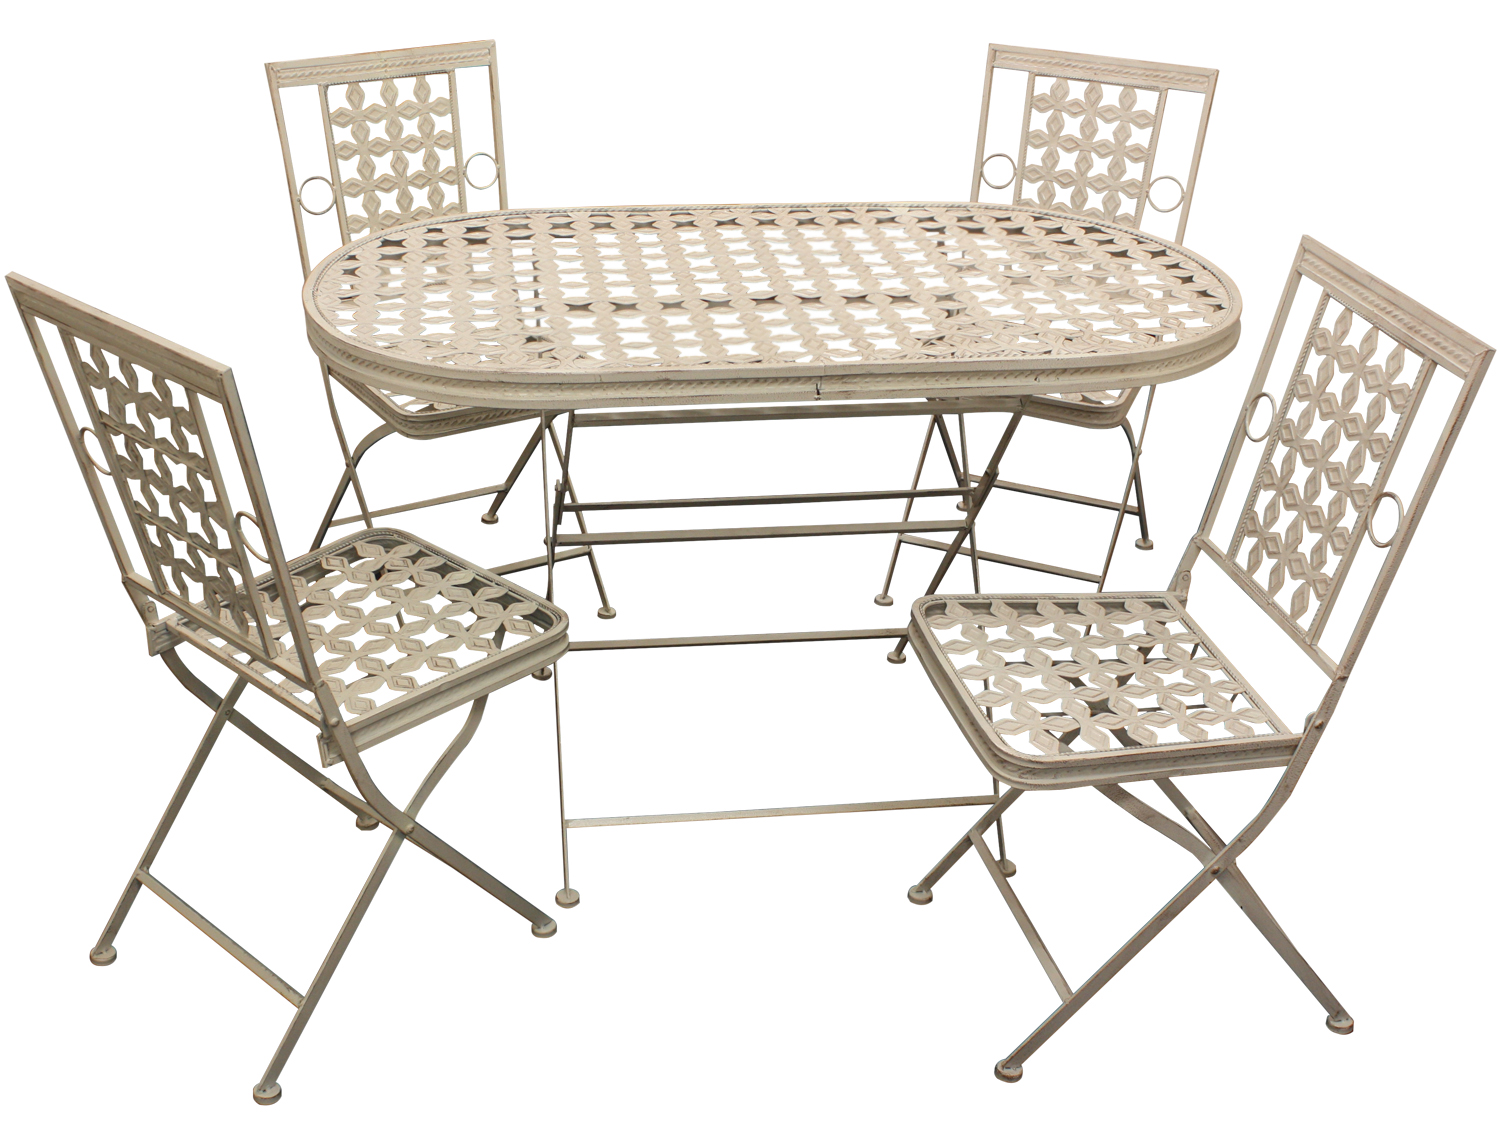 Maribelle folding metal outdoor garden patio dining table for Patio table chair sets